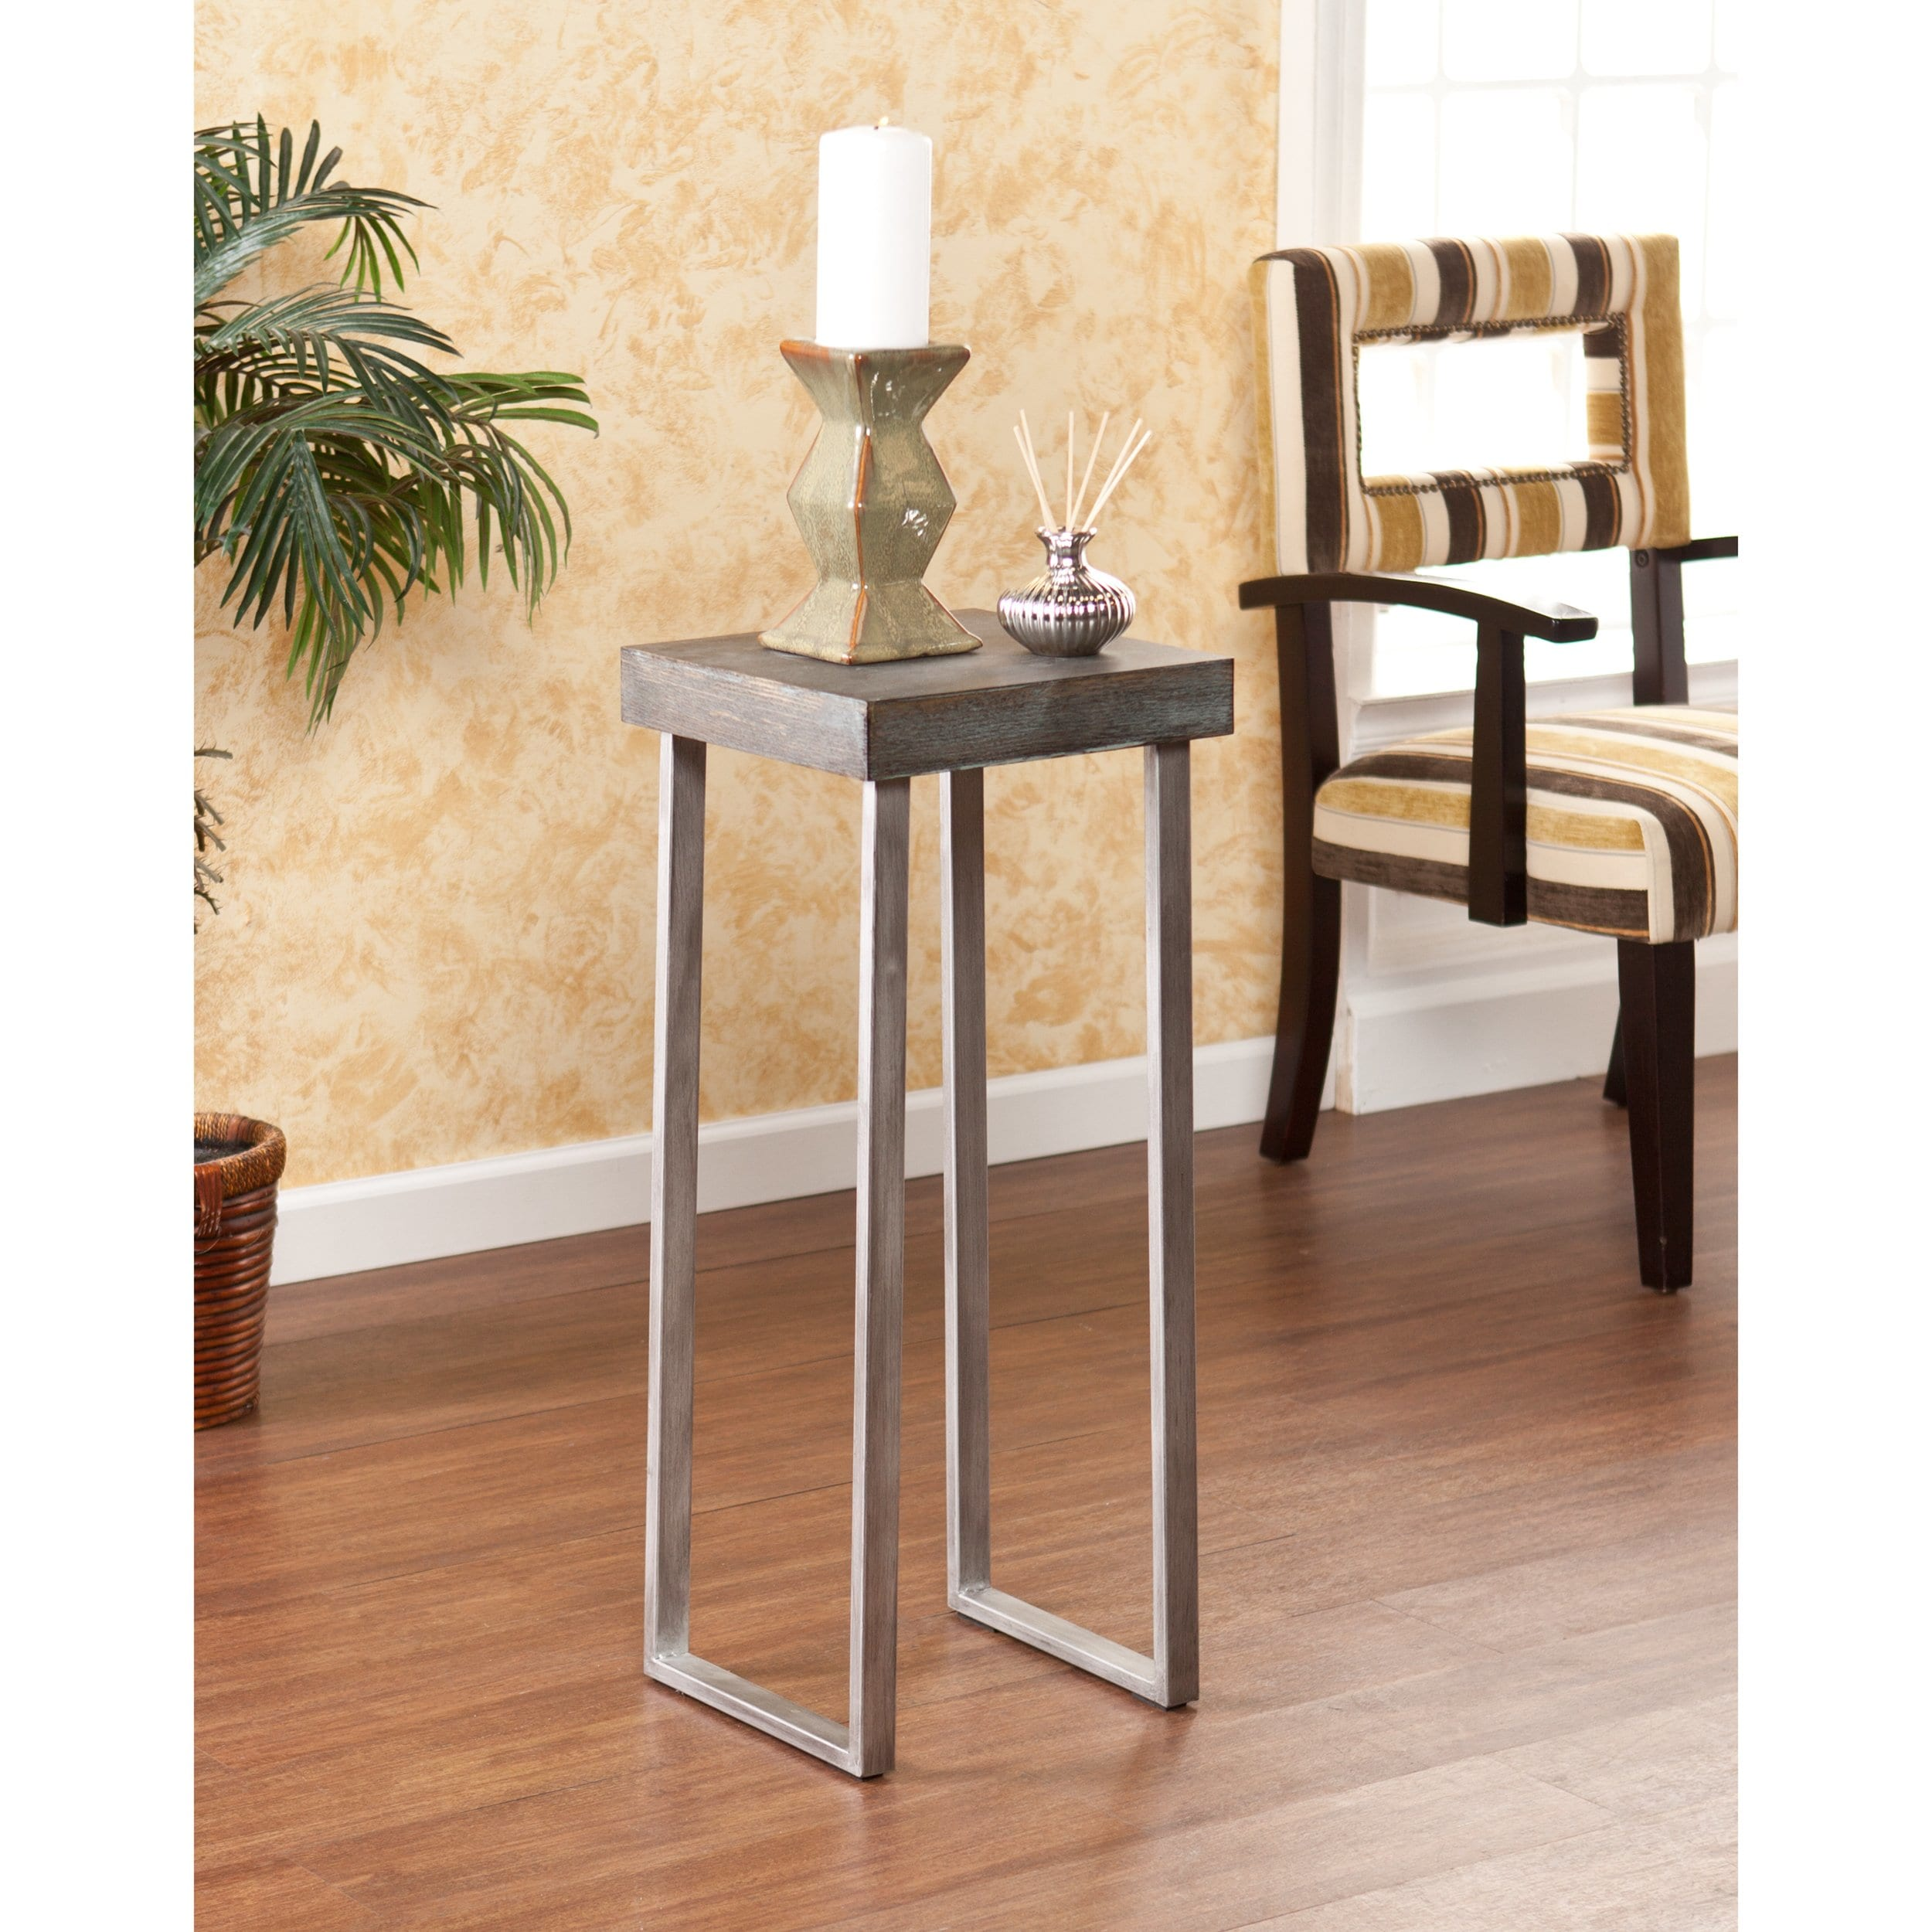 carbon loft murdock pedestal accent table free shipping today contemporary end tables with drawers circular patio cover and chair set charging station small coffee chairs light